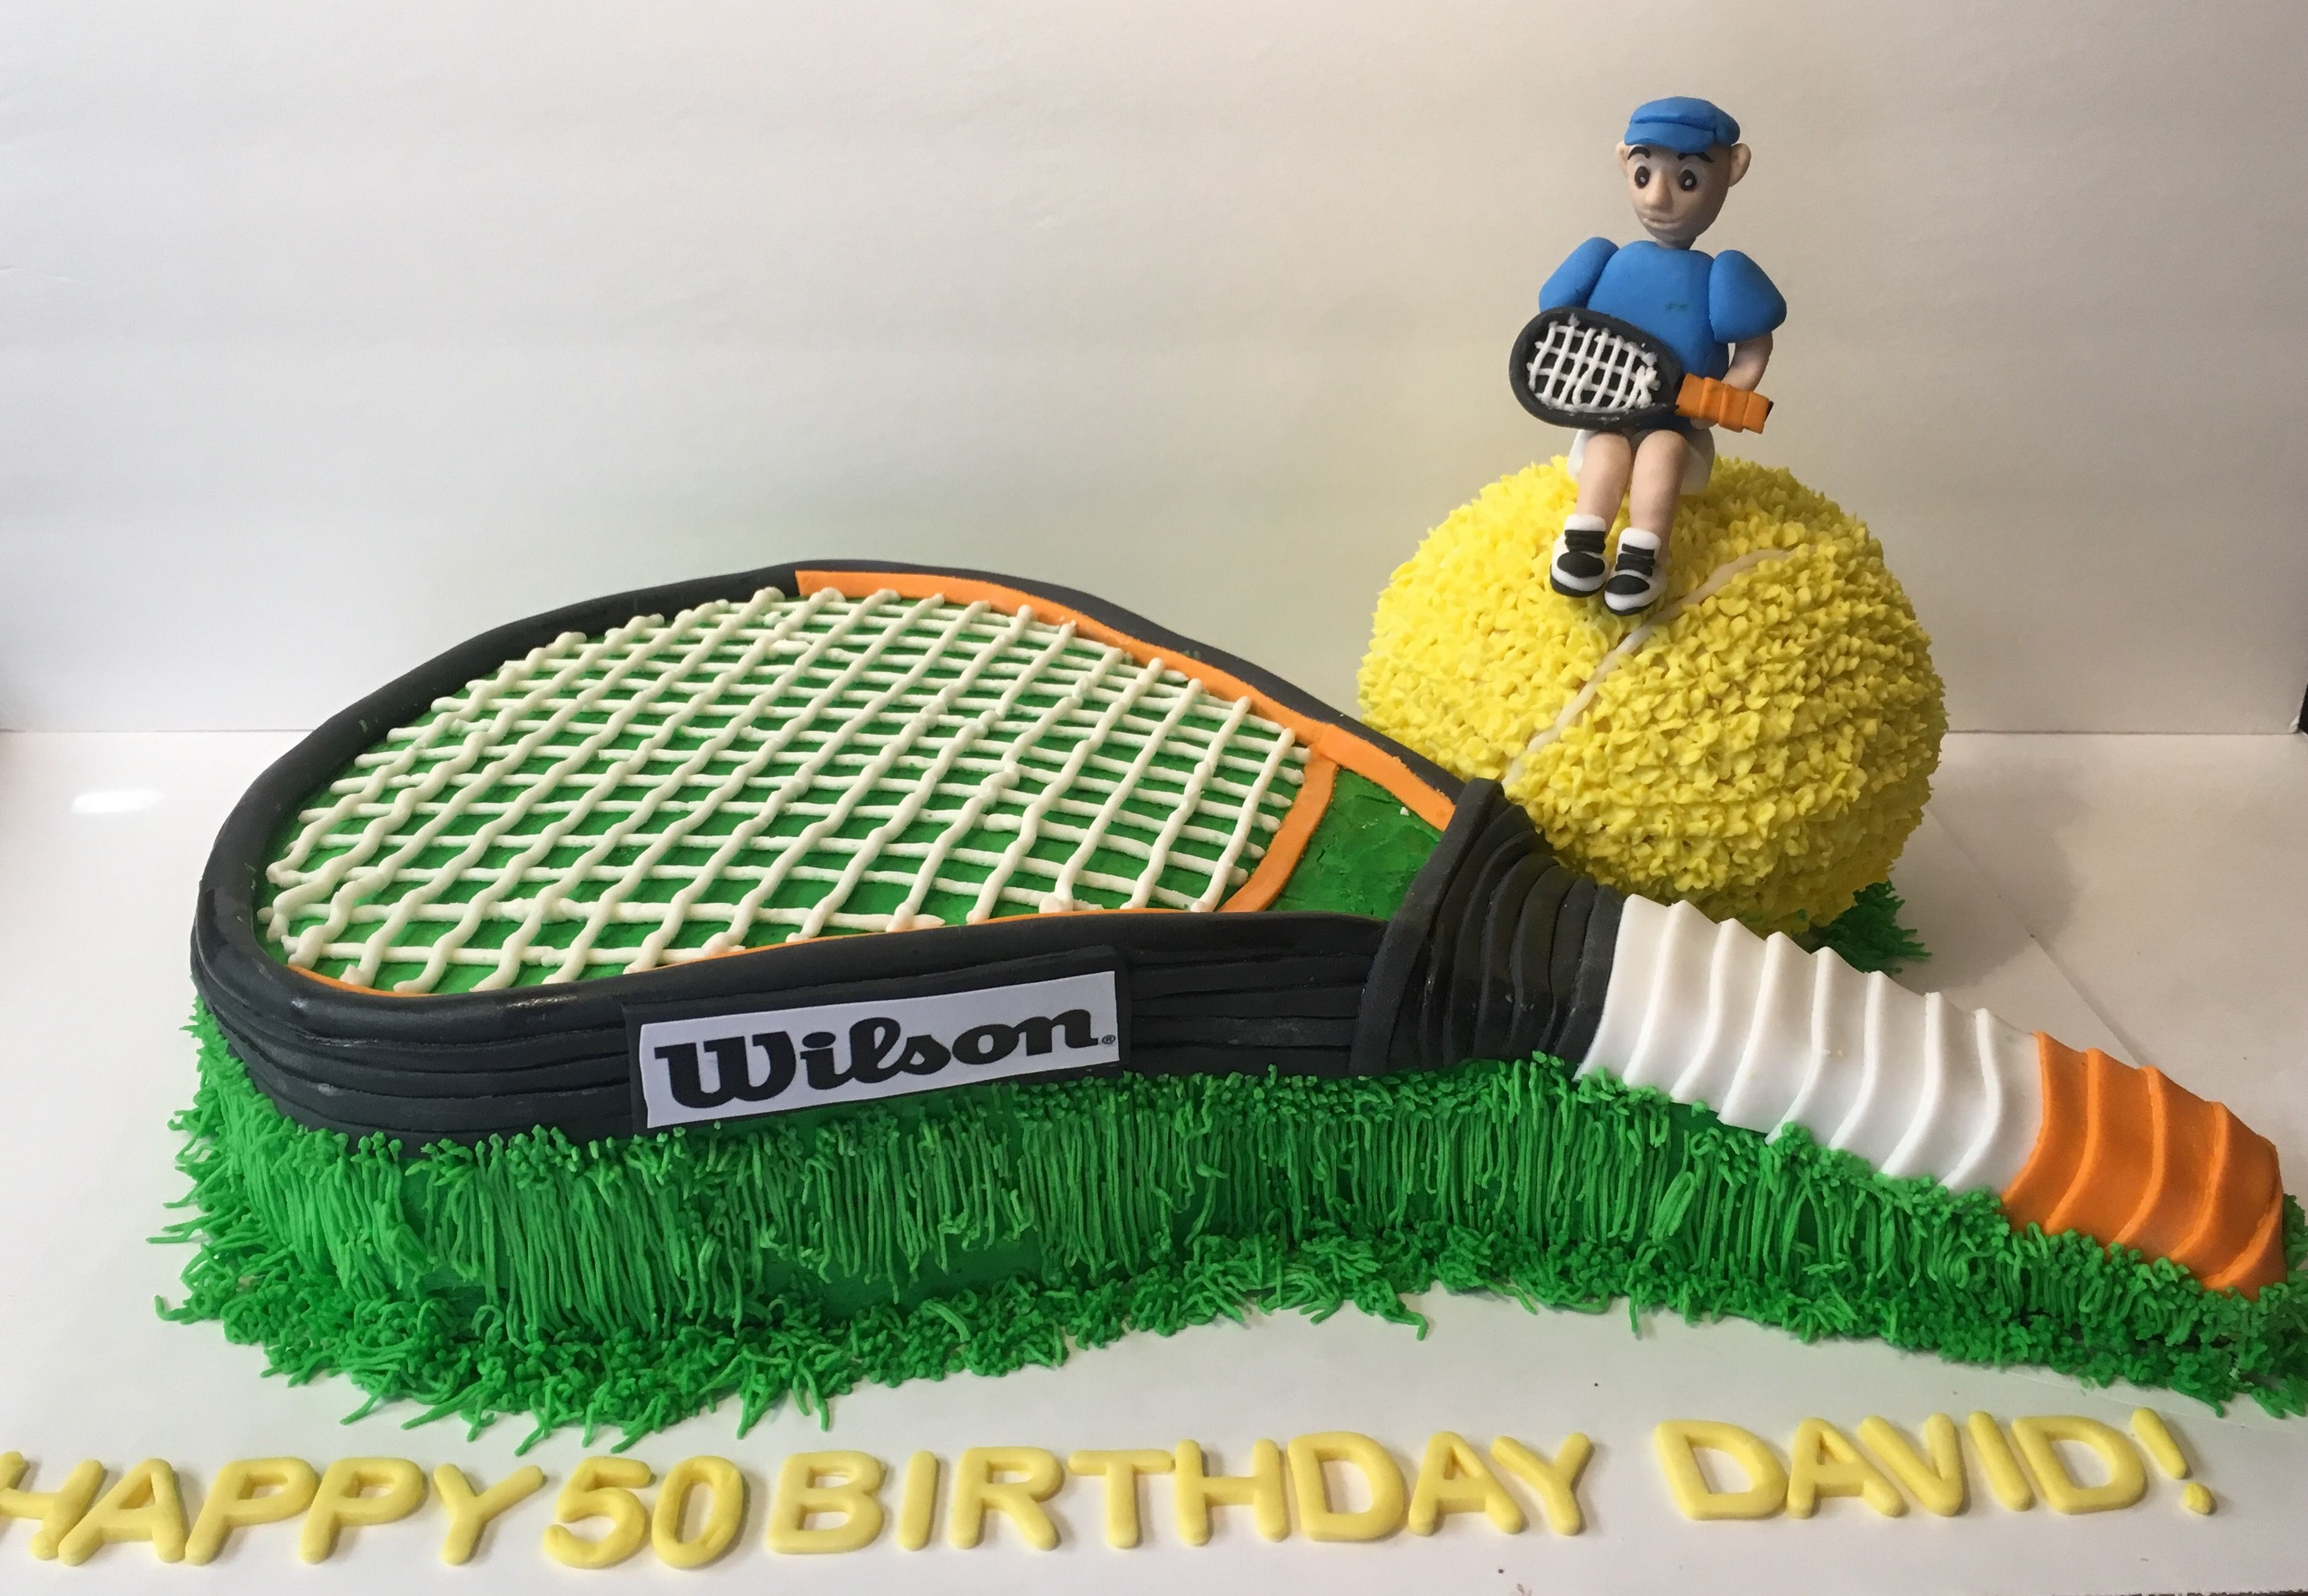 Tennis 50th Birthday Theme Cake 50th Birthday Themes 50th Birthday Themed Cakes